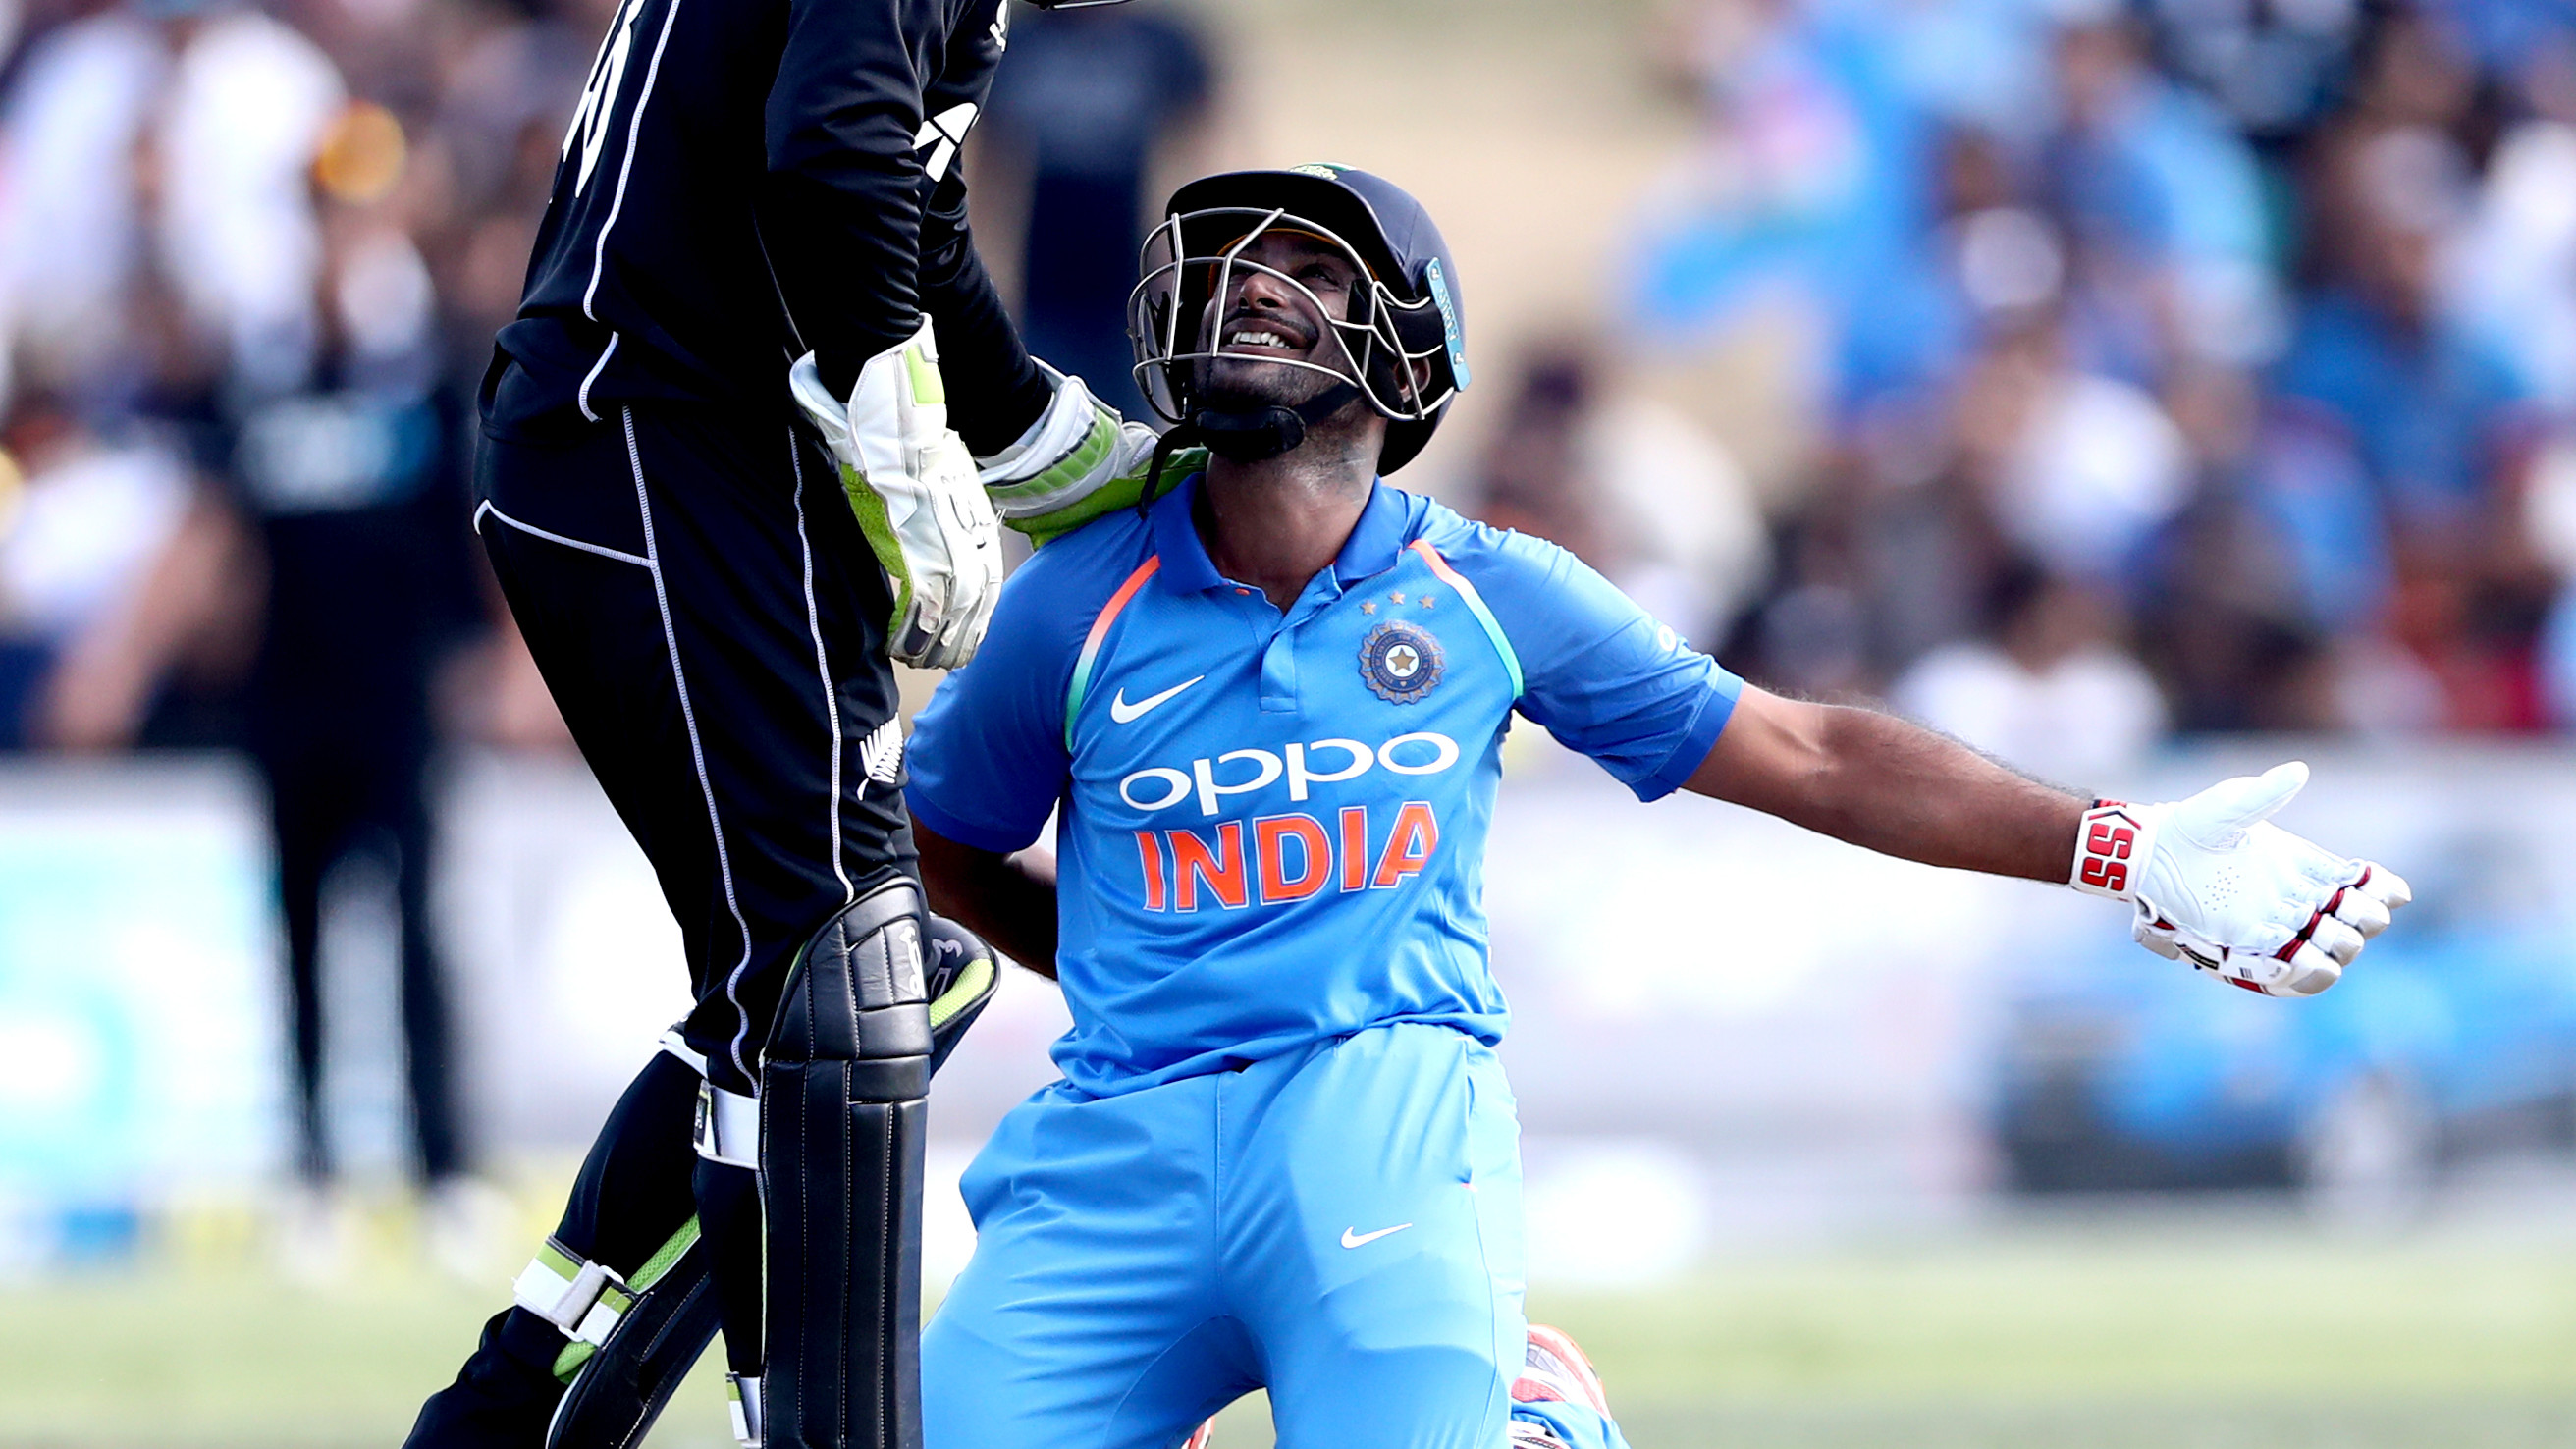 NZ v IND 2019: Ambati Rayudu on Twitterati's target after another slow innings